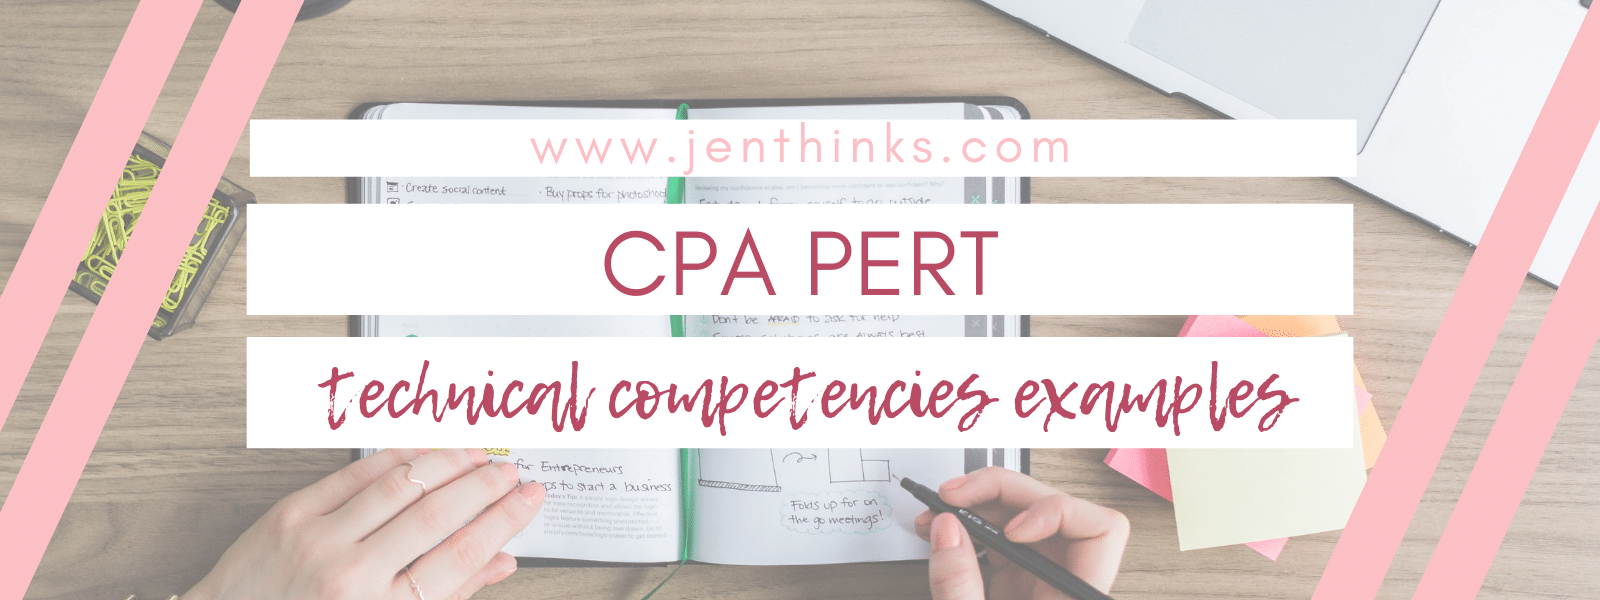 cpa pert technical competencies examples